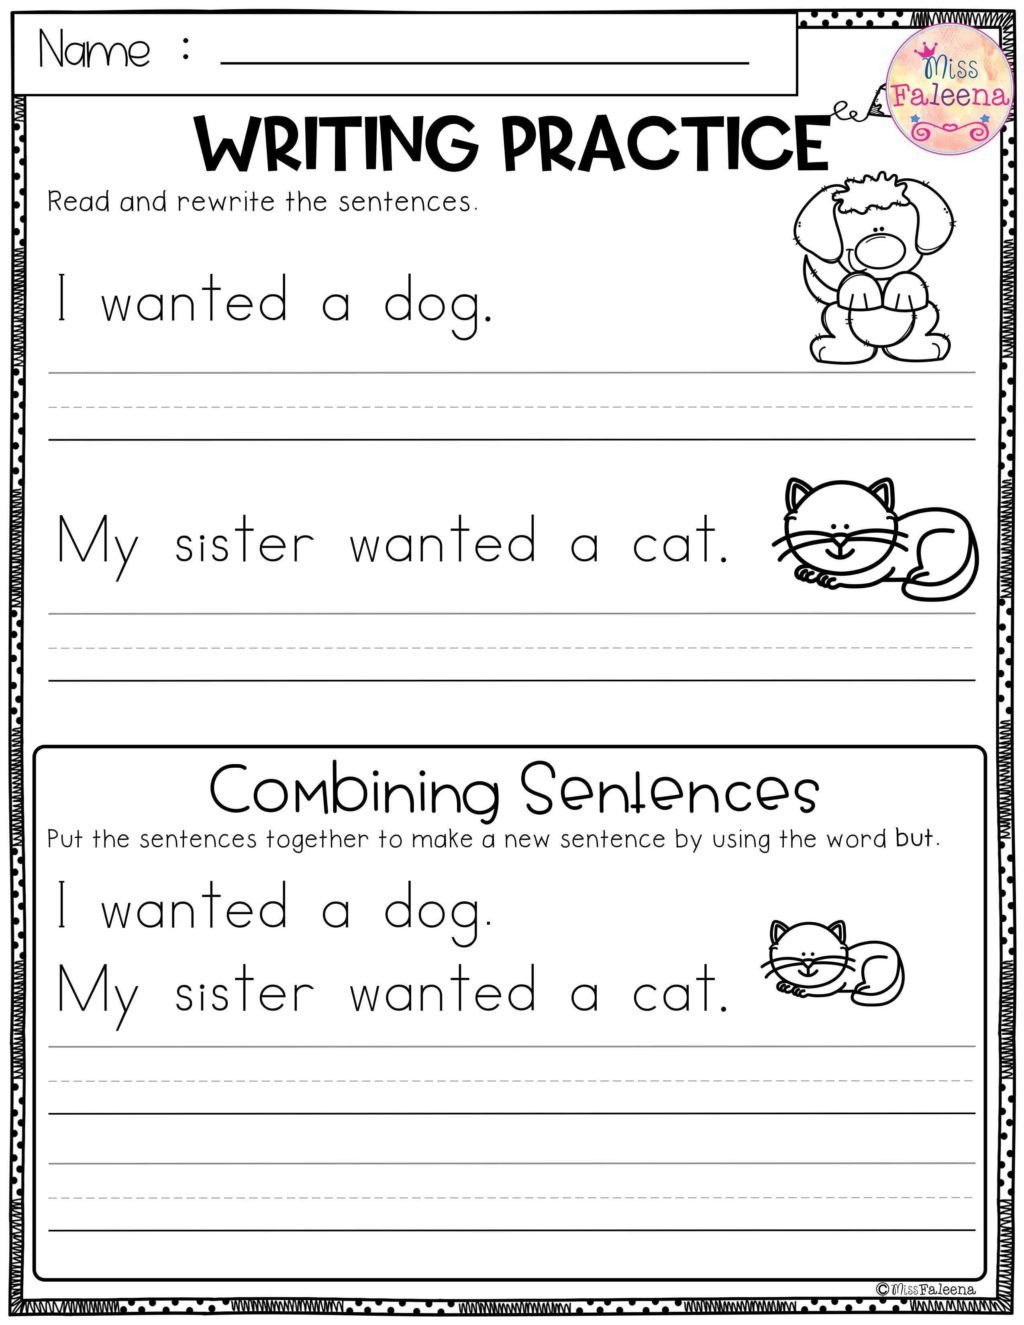 Combining Sentences Worksheets 5th Grade Worksheet Free Writing Practice Bining Sentences